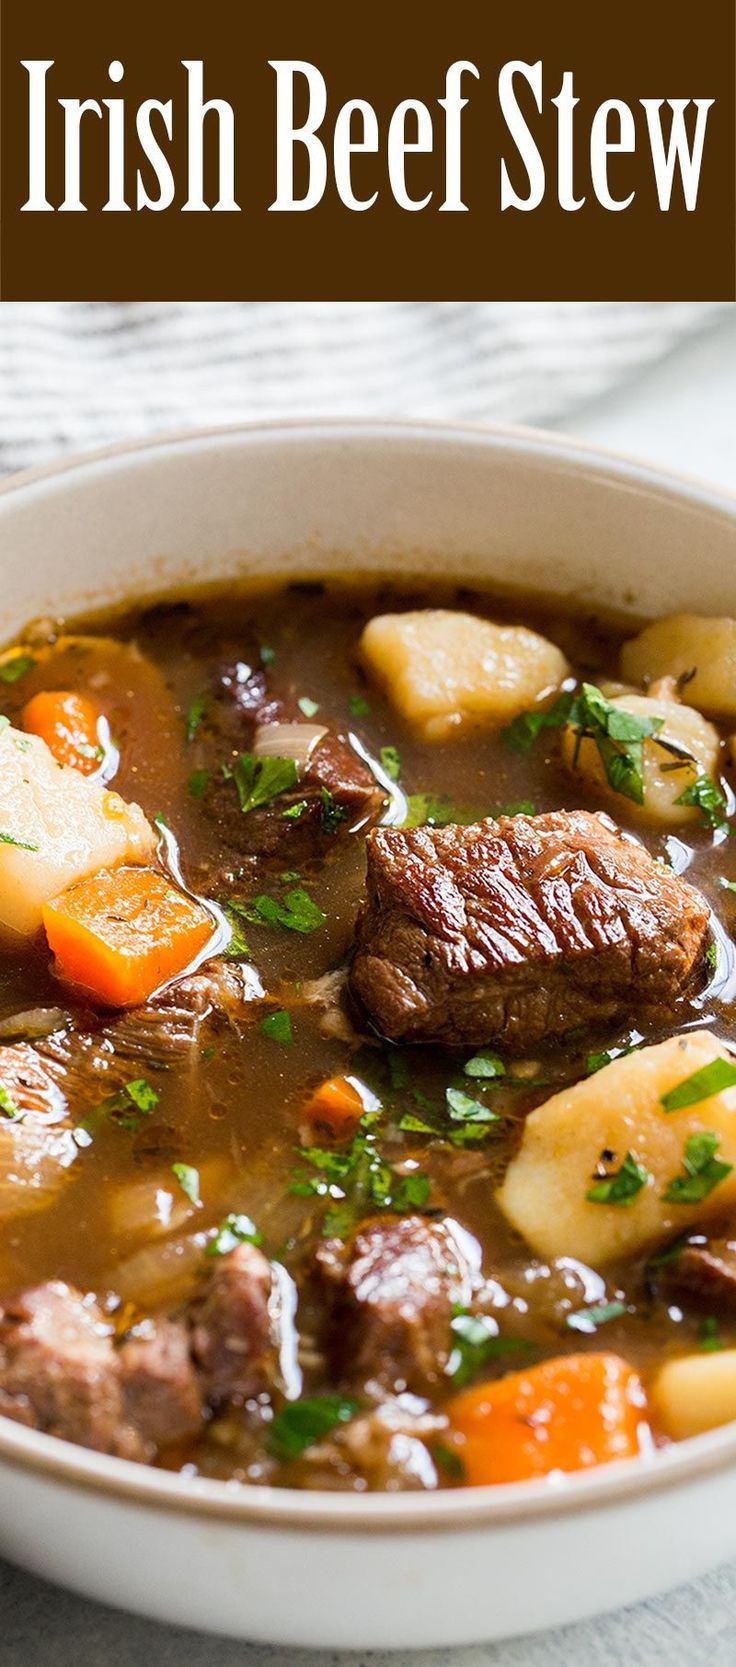 25+ best ideas about Irish Stew on Pinterest | Irish beef ...